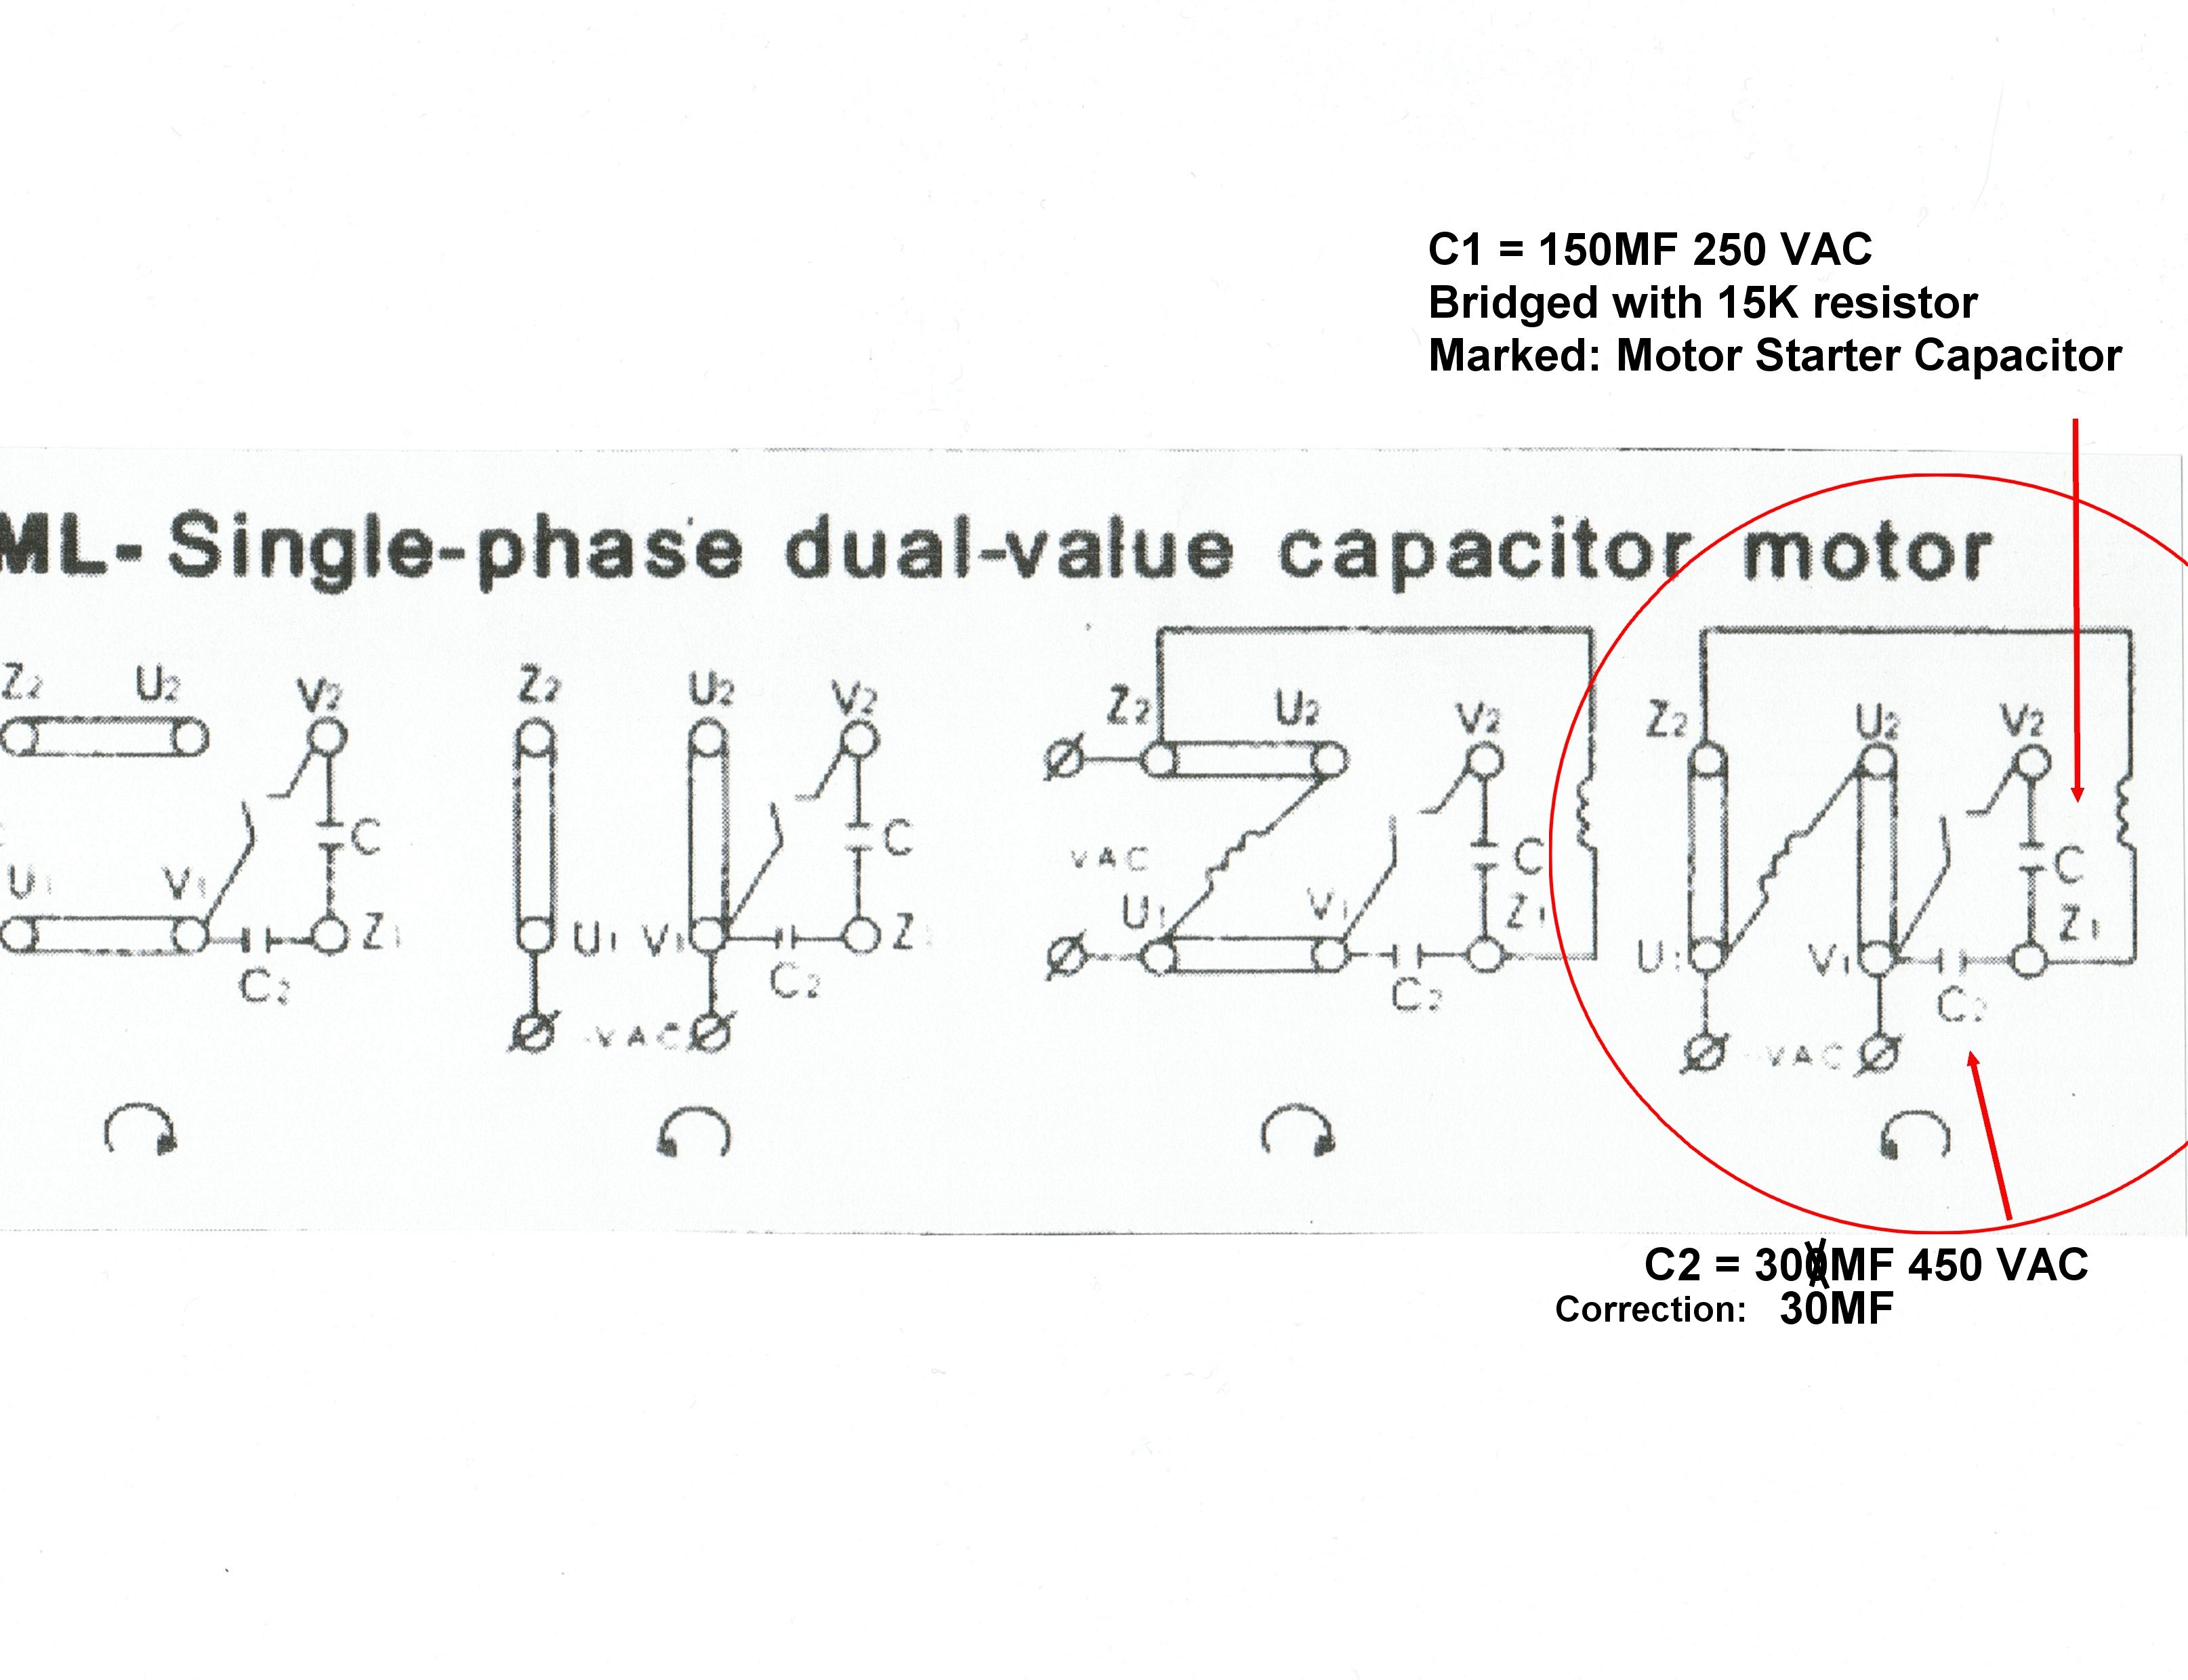 Wiring Diagram Single Phase Electric Motor : Single phase motor wiring diagrams free engine